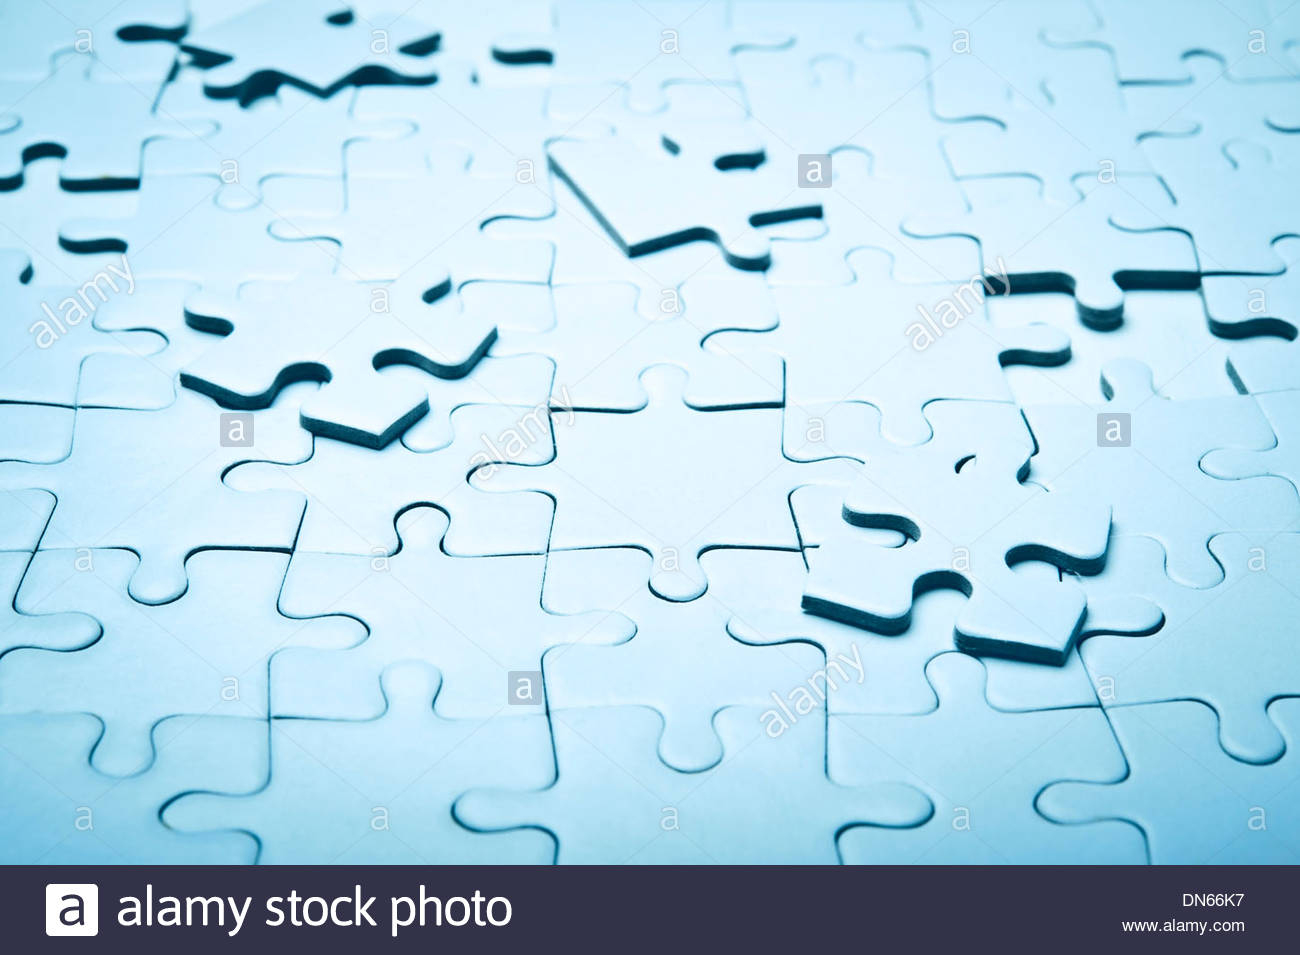 Blank Jigsaw Puzzle, Unfinished Stock Photo: 64675835 - Alamy encequiconcerne Puzzle Photo Gratuit